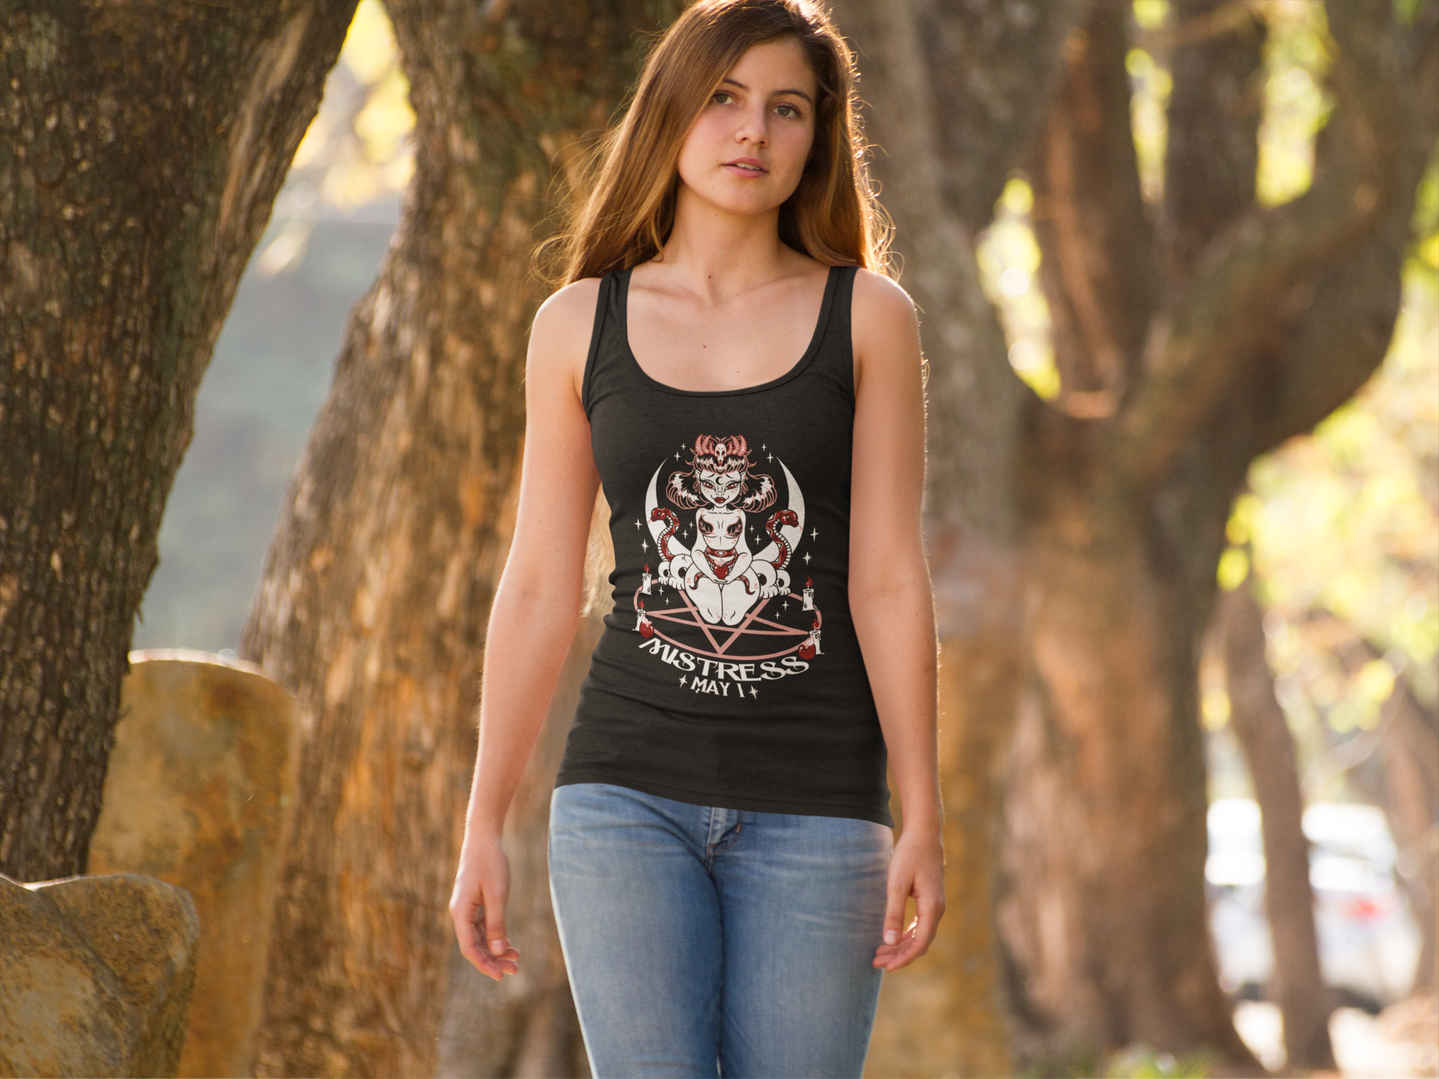 girl-on-the-street-tank-top-mockup-9044f